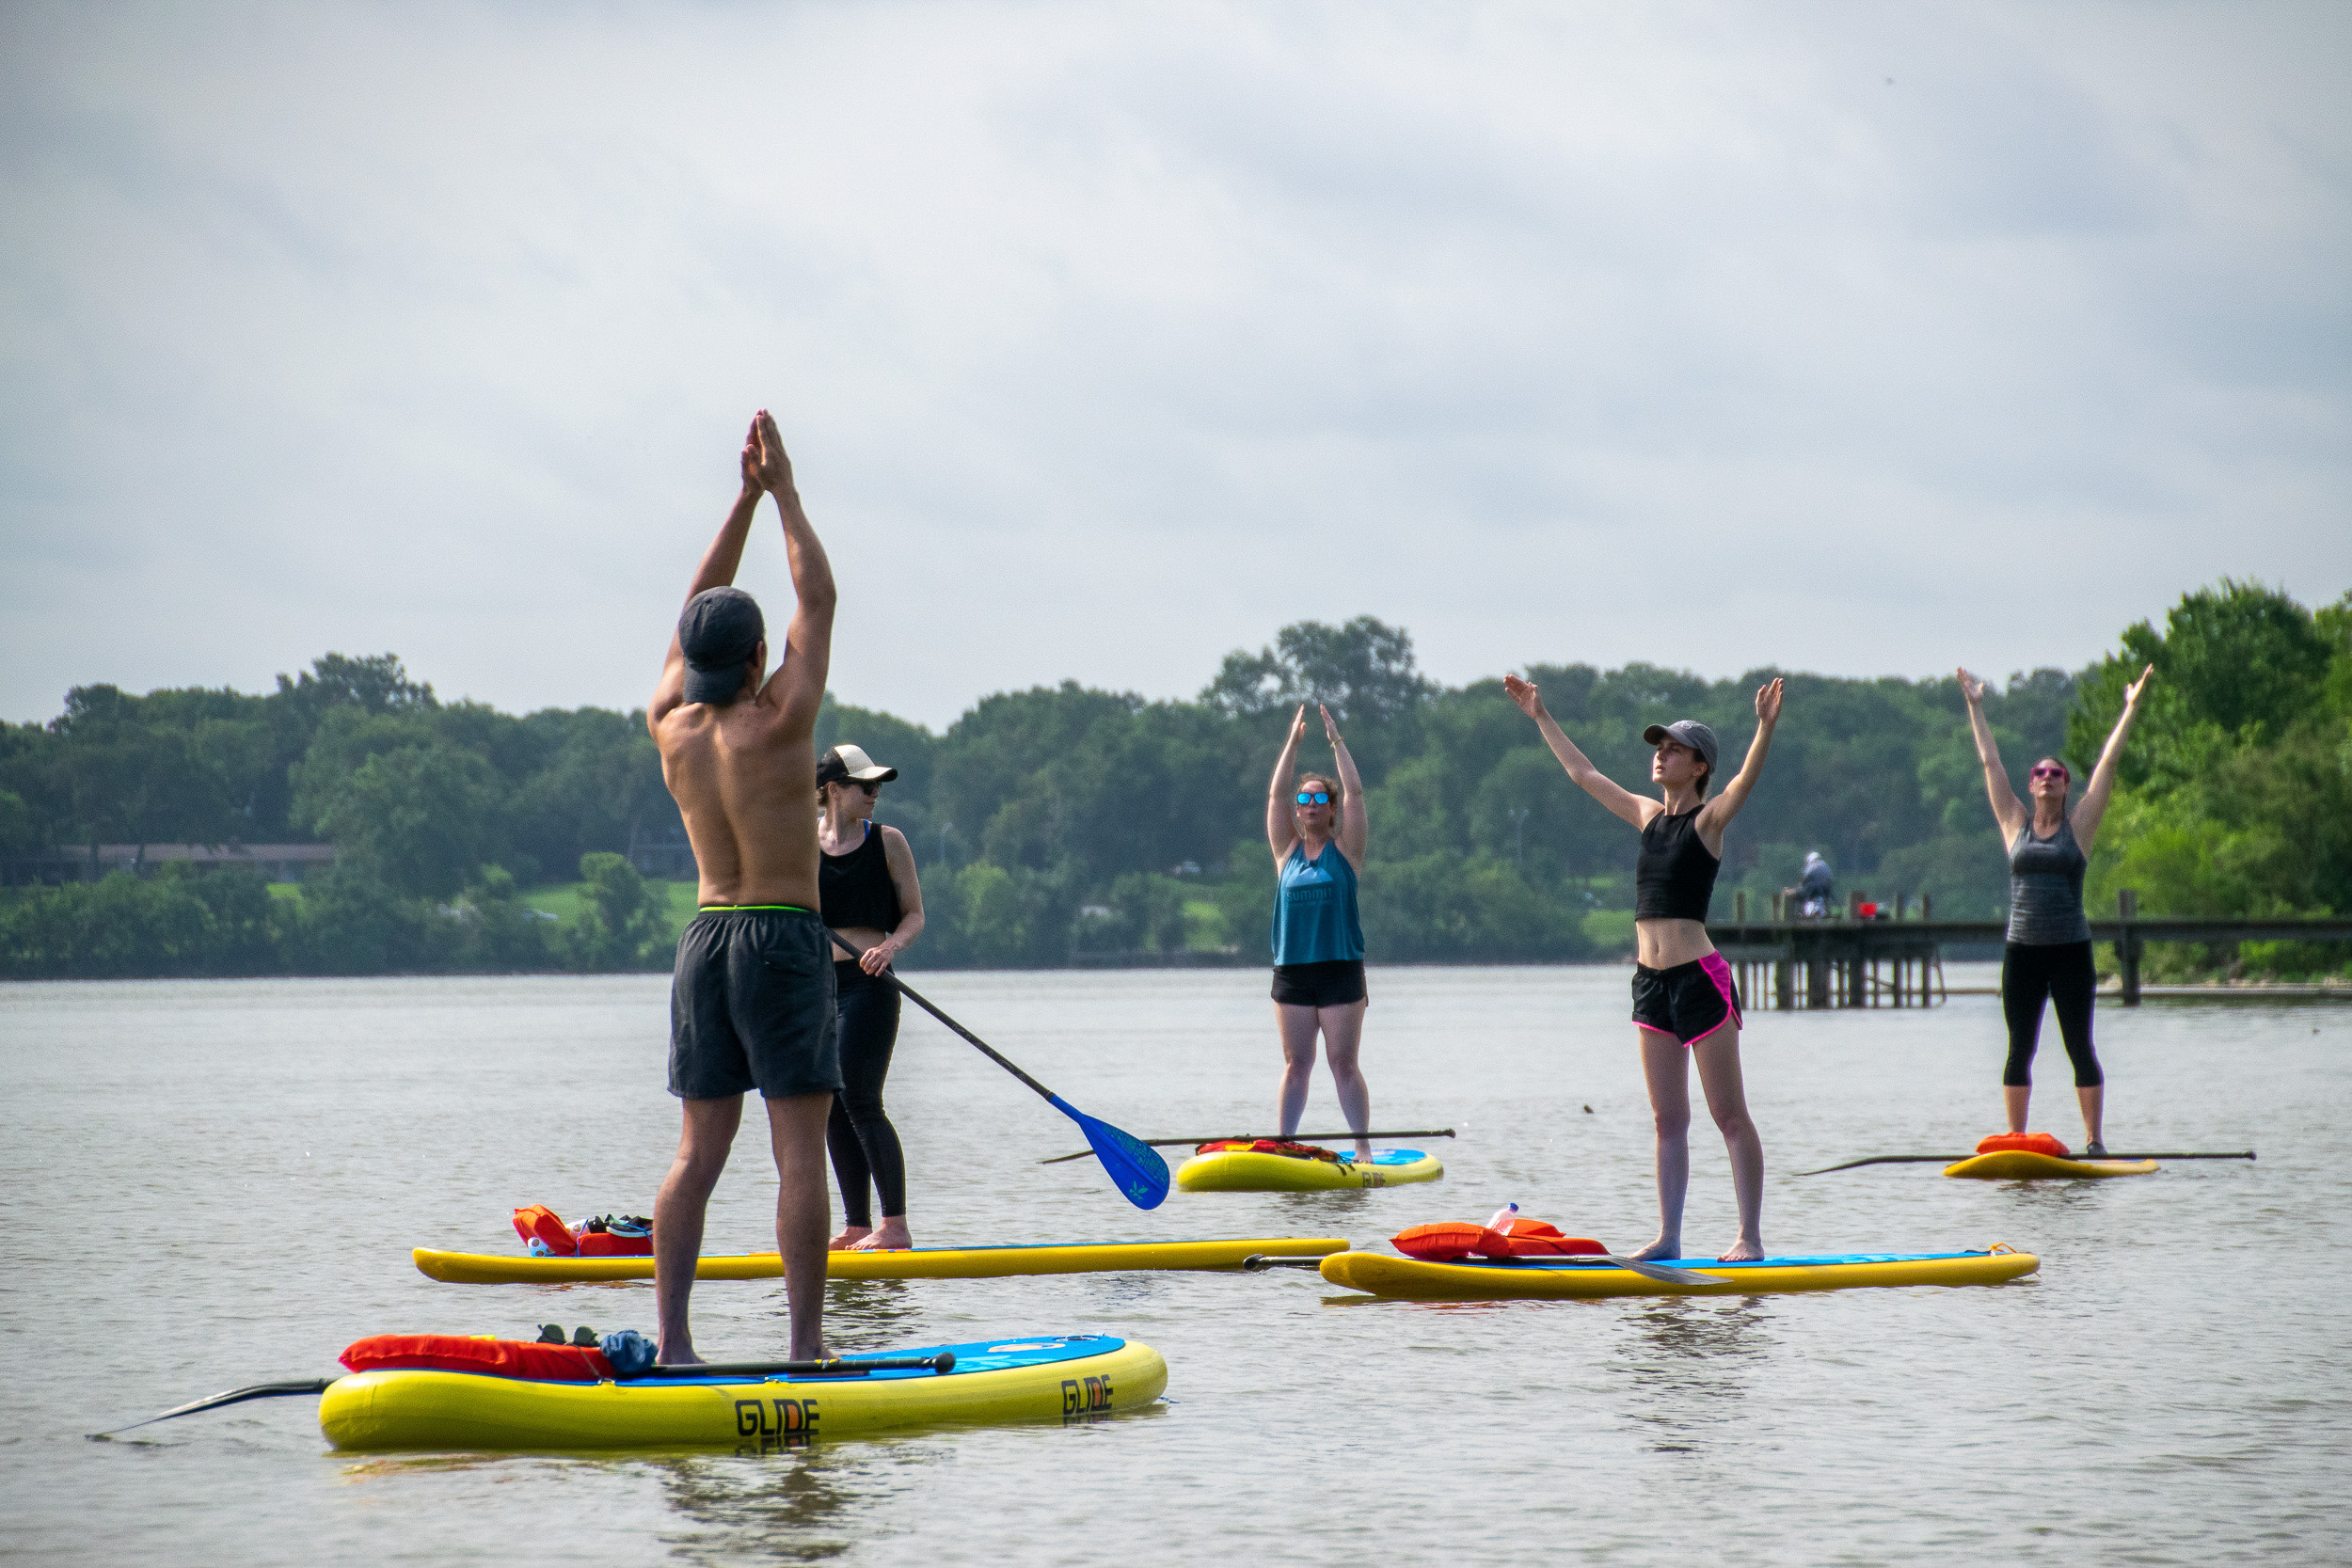 Yogis stretch on paddle boards at White Rock Lake in Dallas.